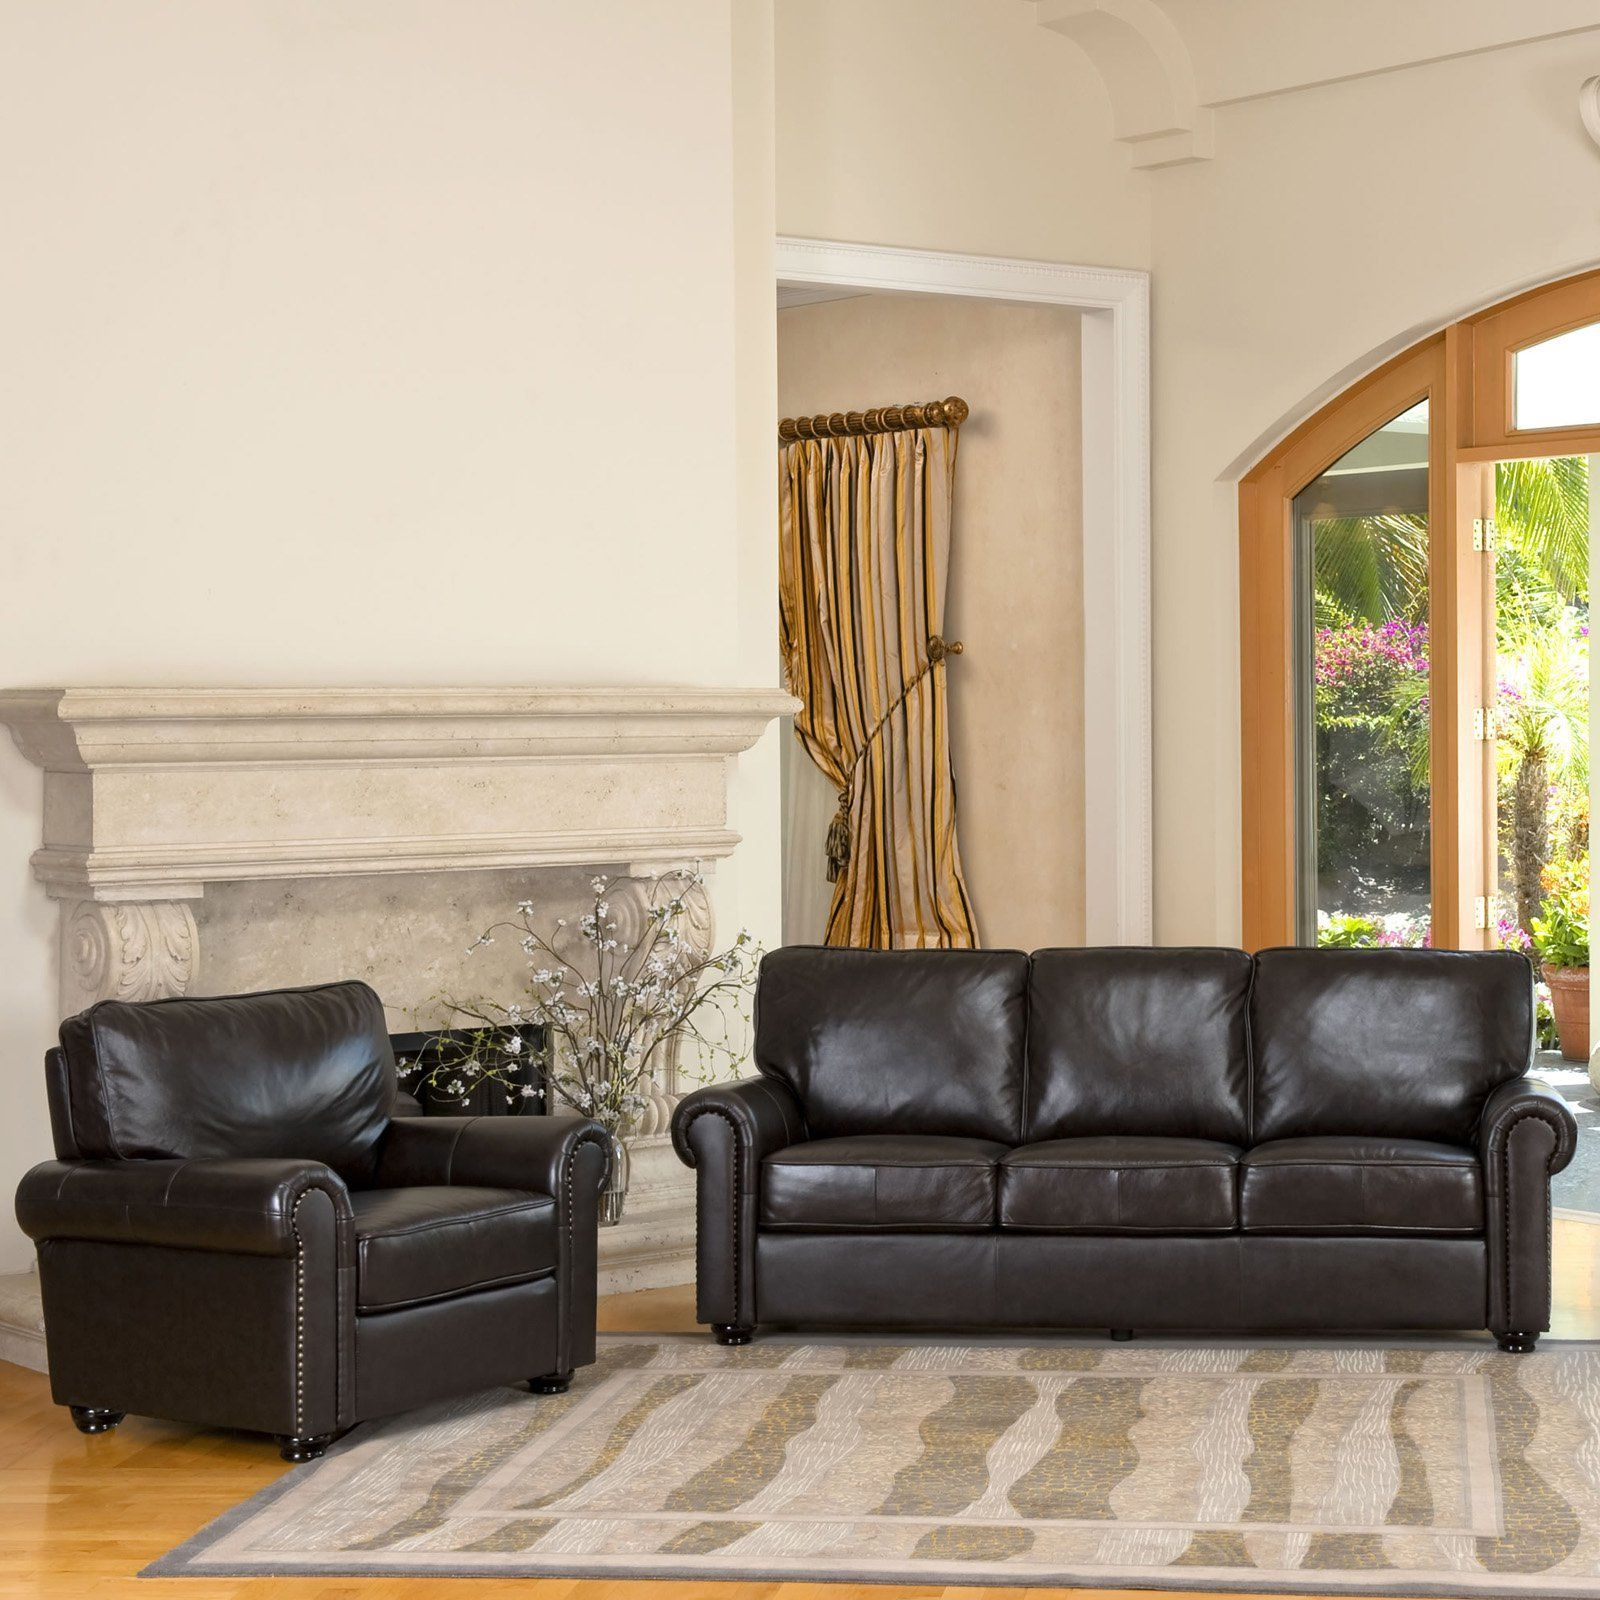 abbyson living london brown leather chair and sofa set | from